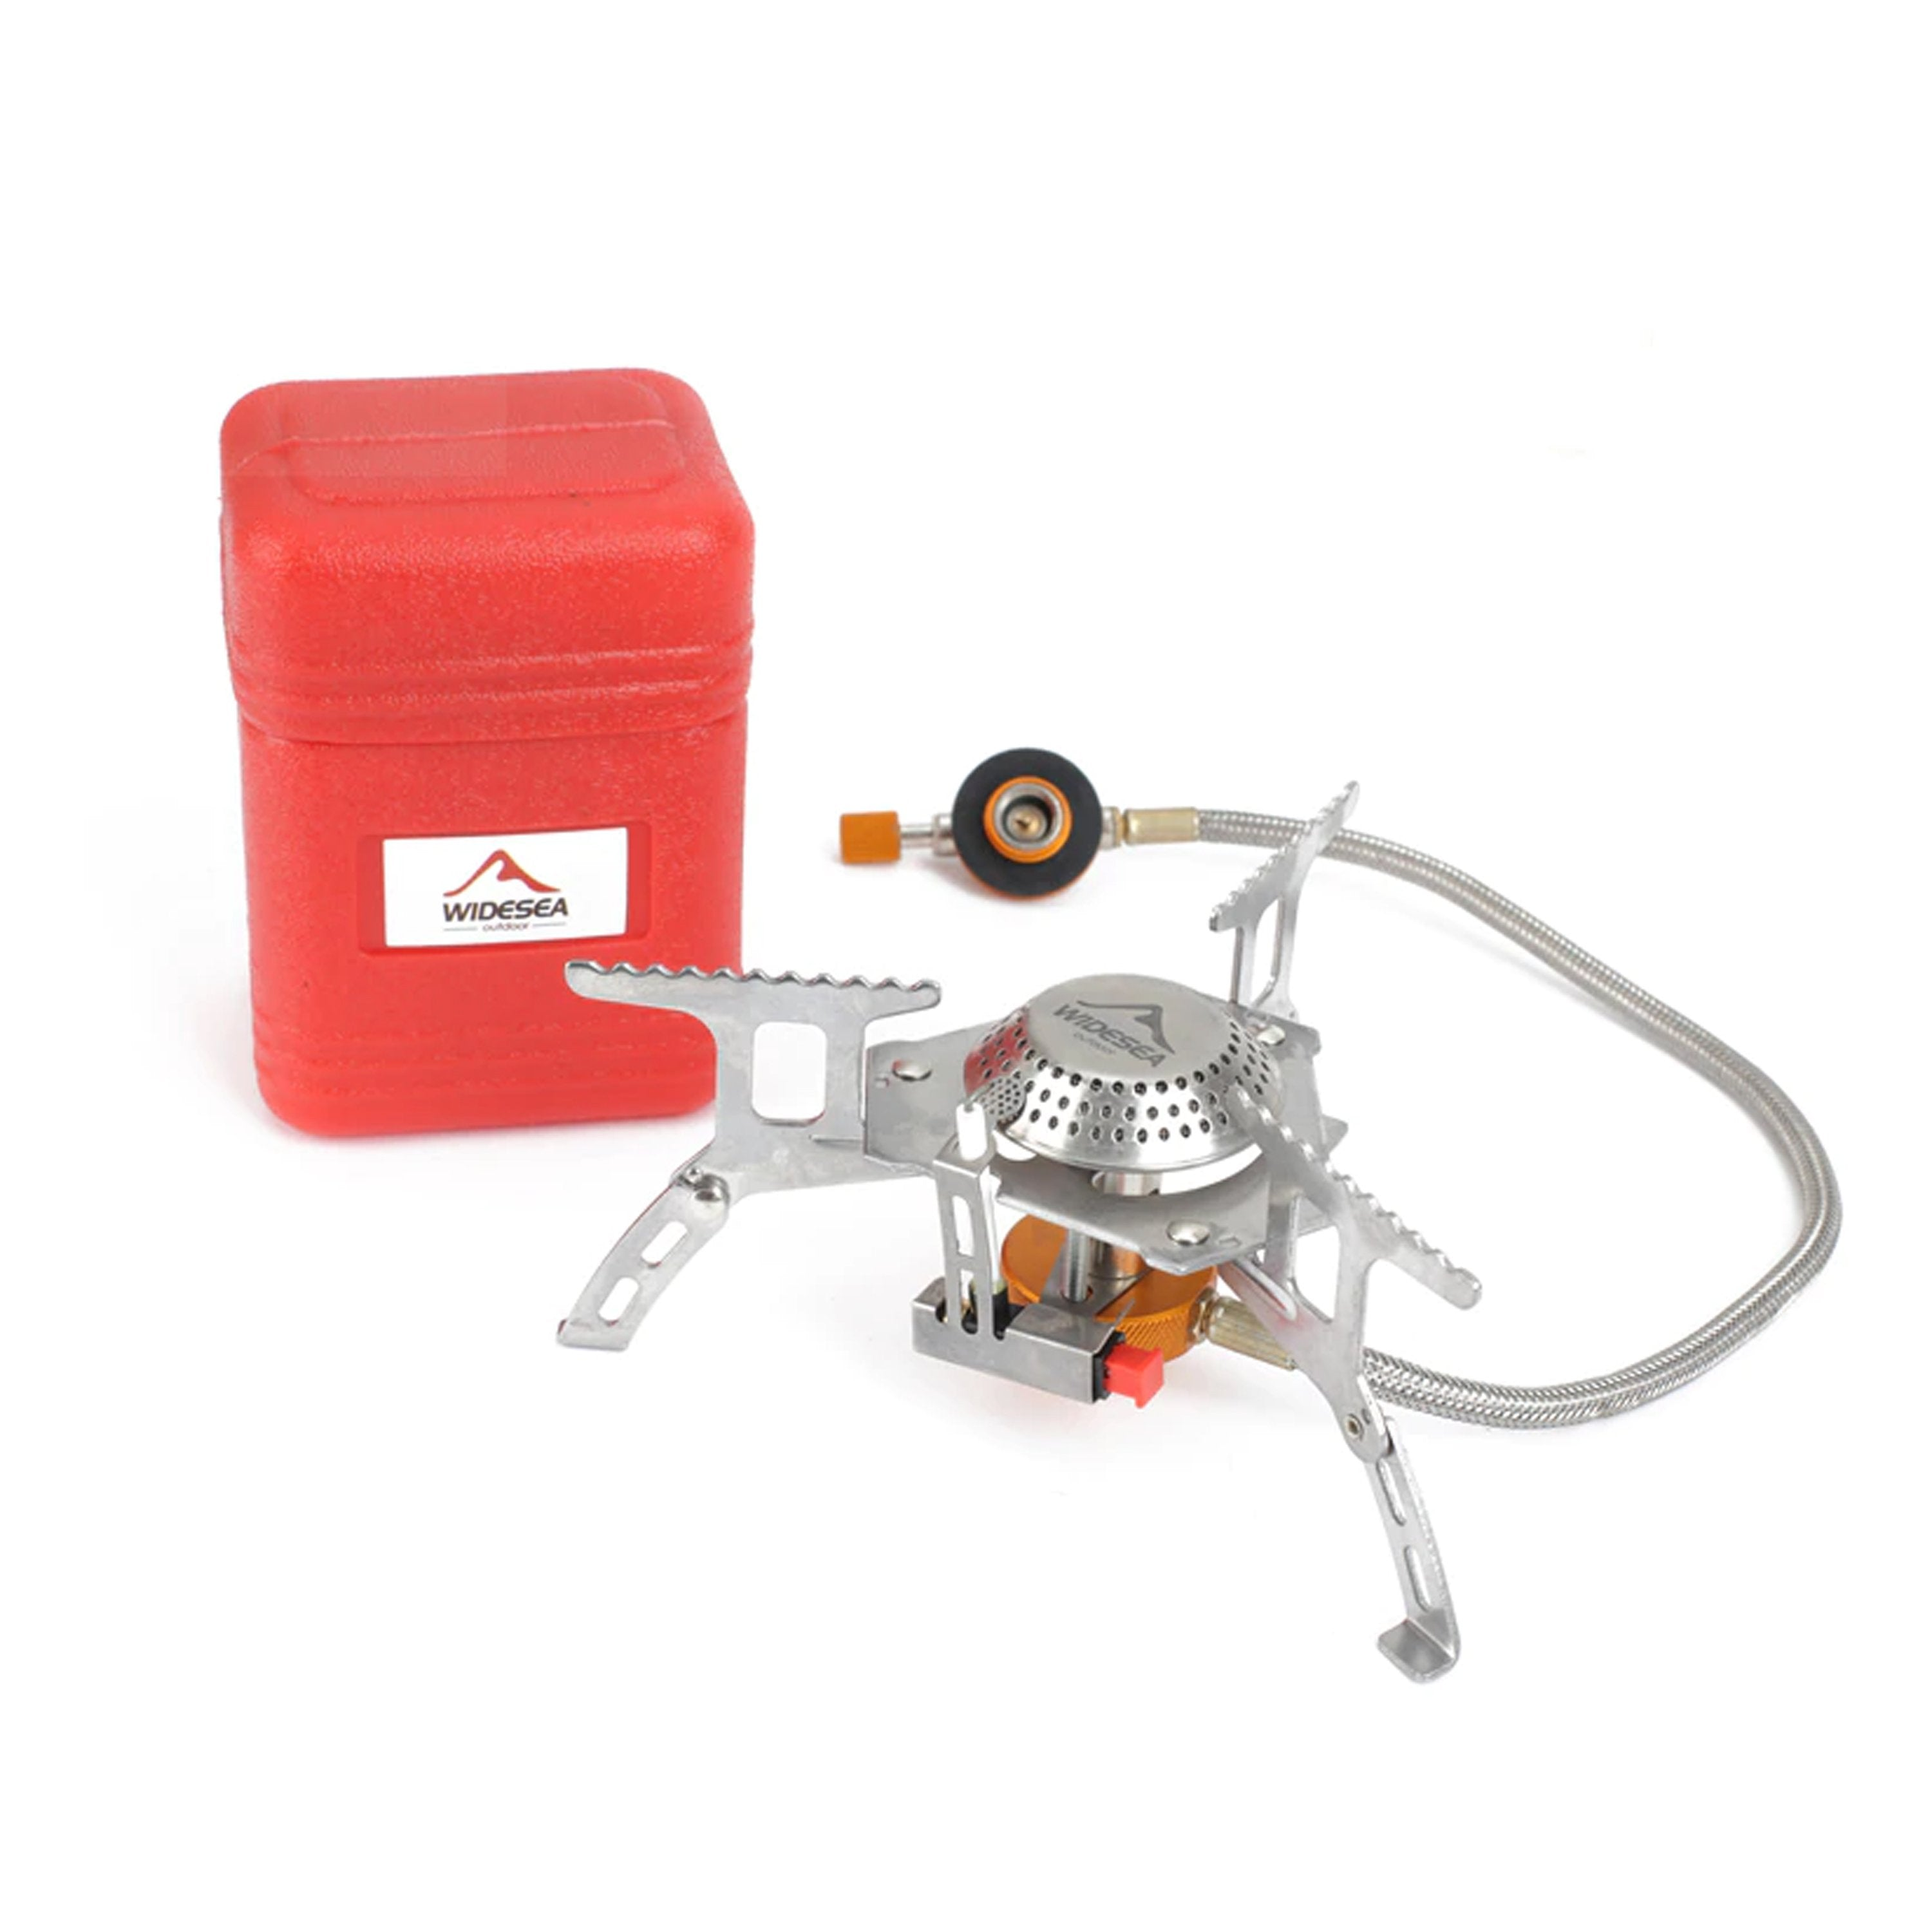 Small Portable Backpacking Camping Stove - Shopptique